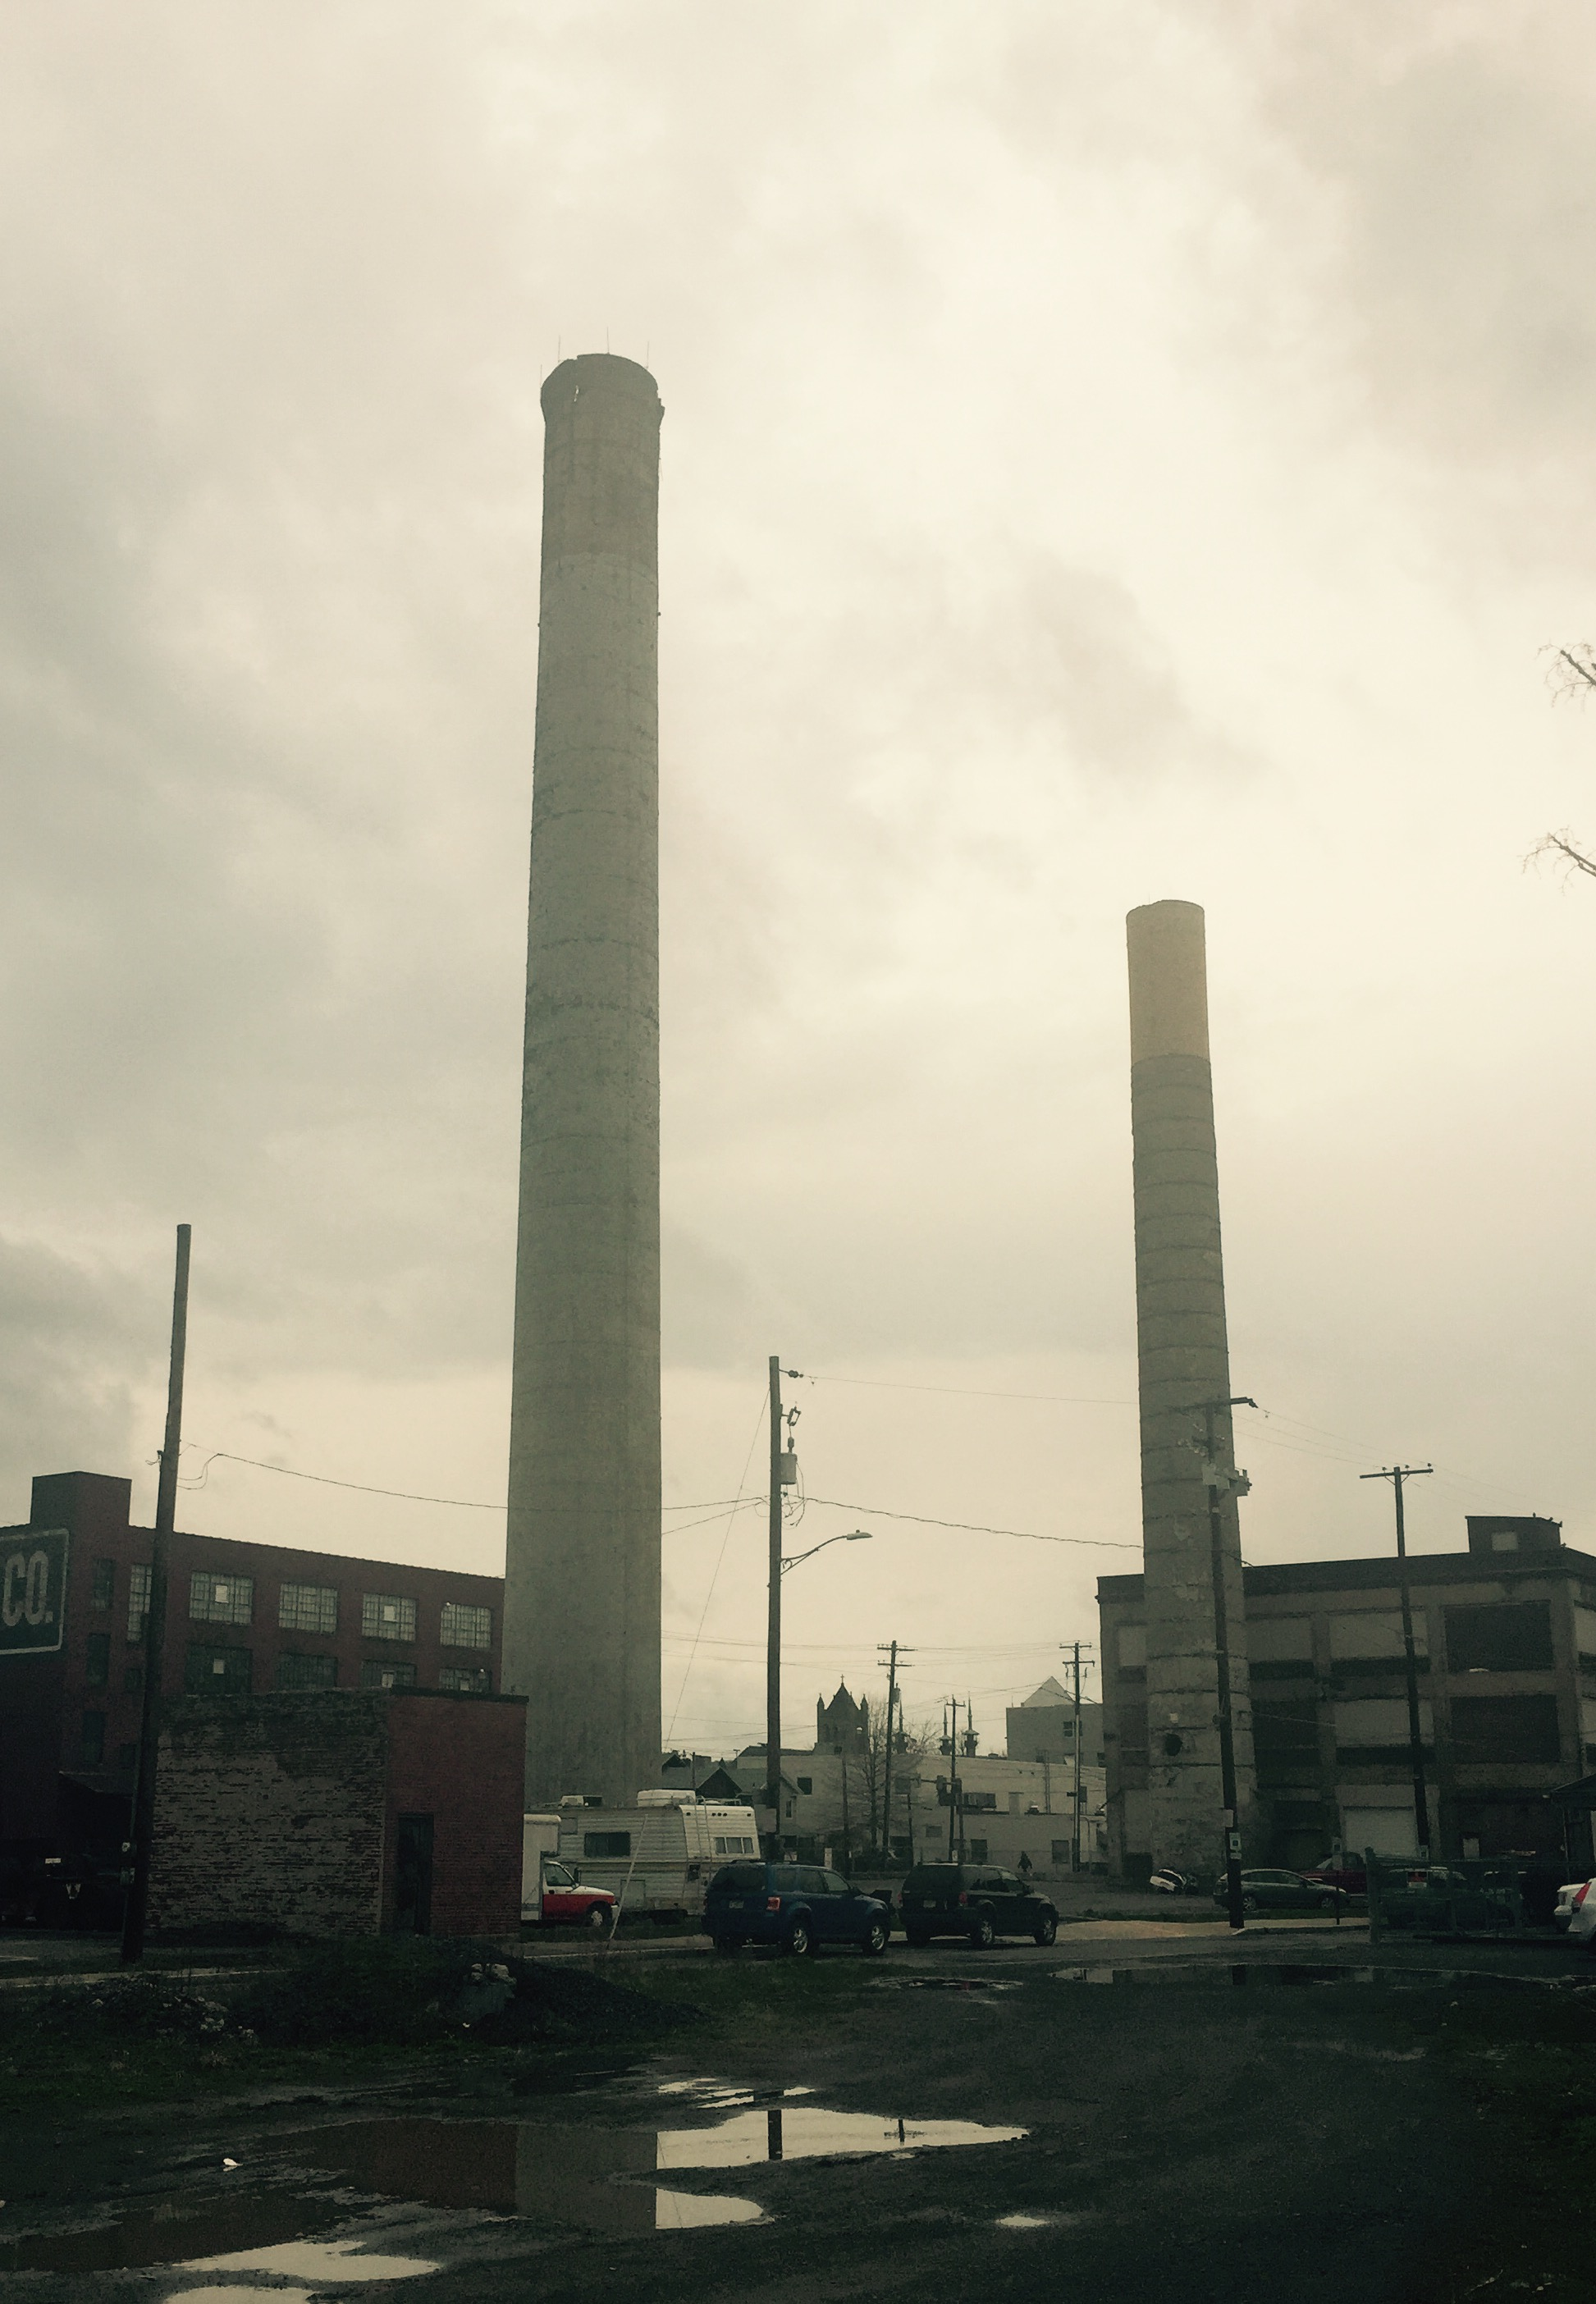 Old Smokestacks Photo by Molly Briana McMullen (April 7, 2016)